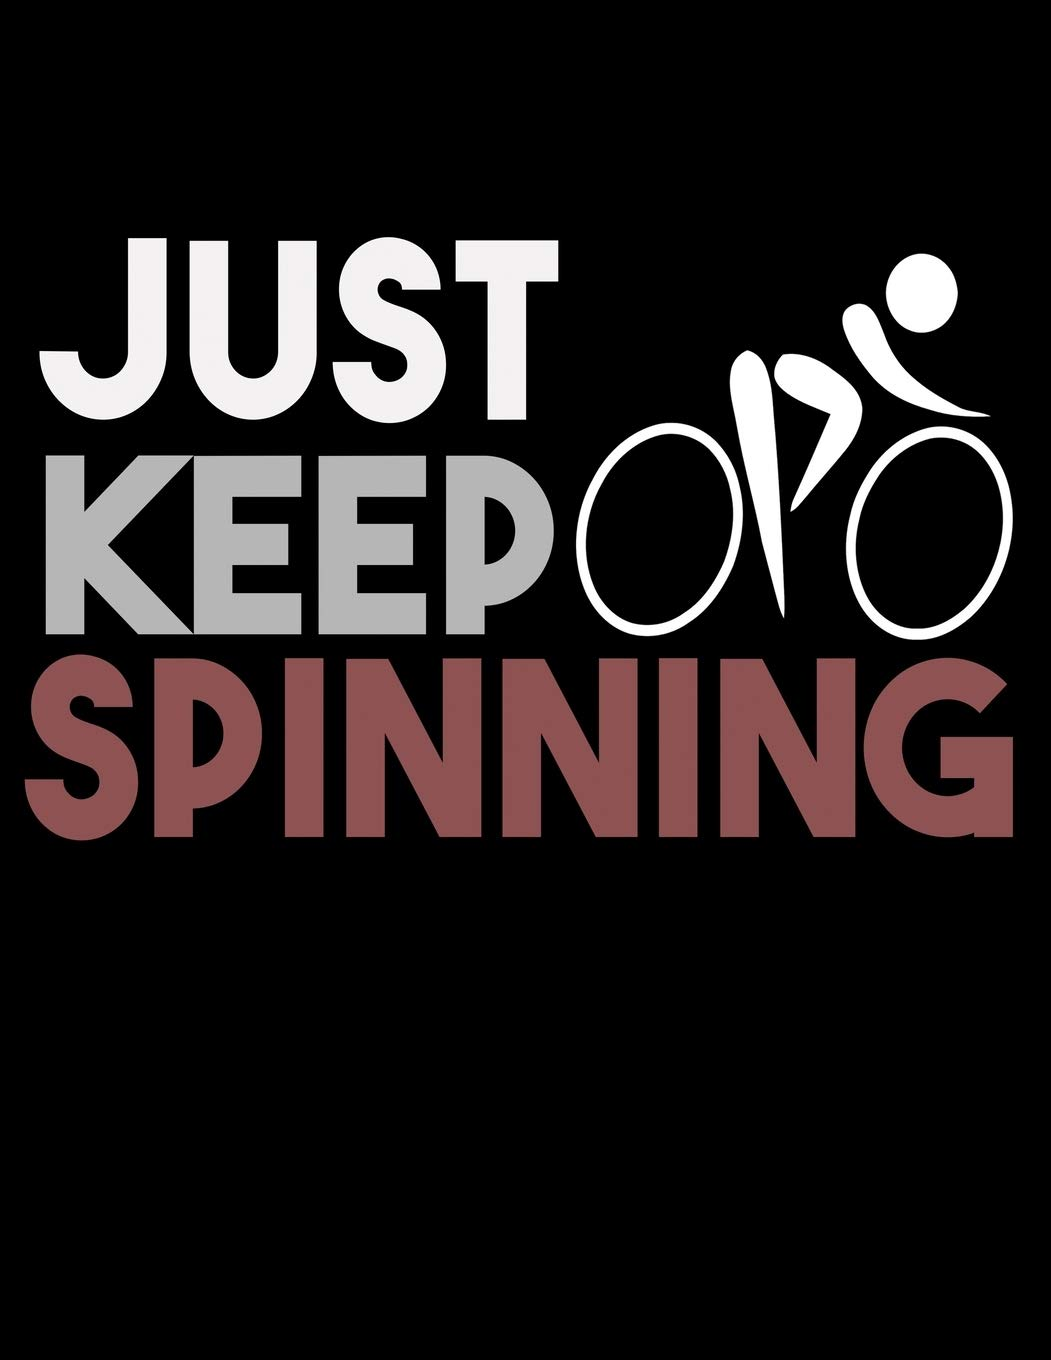 Just Keep Spinning: Diary For Dreamers, Notebook To Record Dreams, Guided Dream Journal Log Book For Cycling Lovers, Fitness Enthusiasts And For Gym And Workout Fans 8.5 x 11; 120 Pages: Amazon.es: